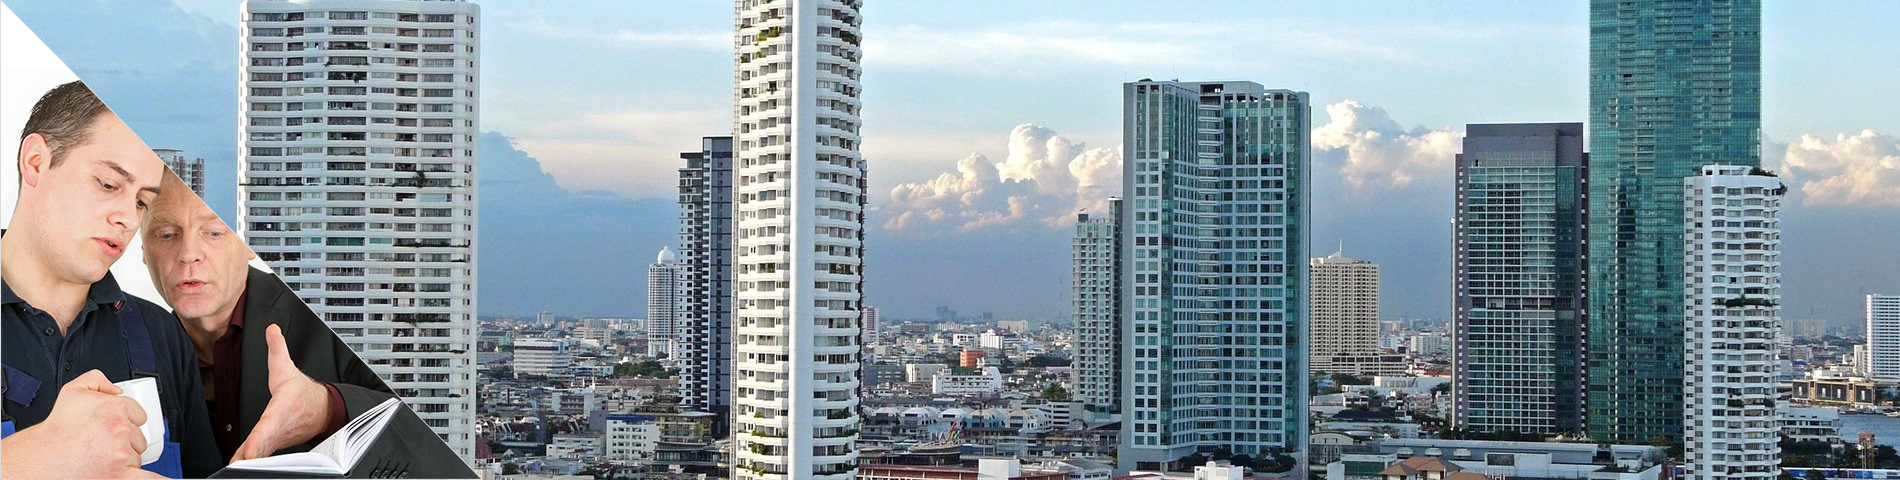 Bangkok - One-to-one